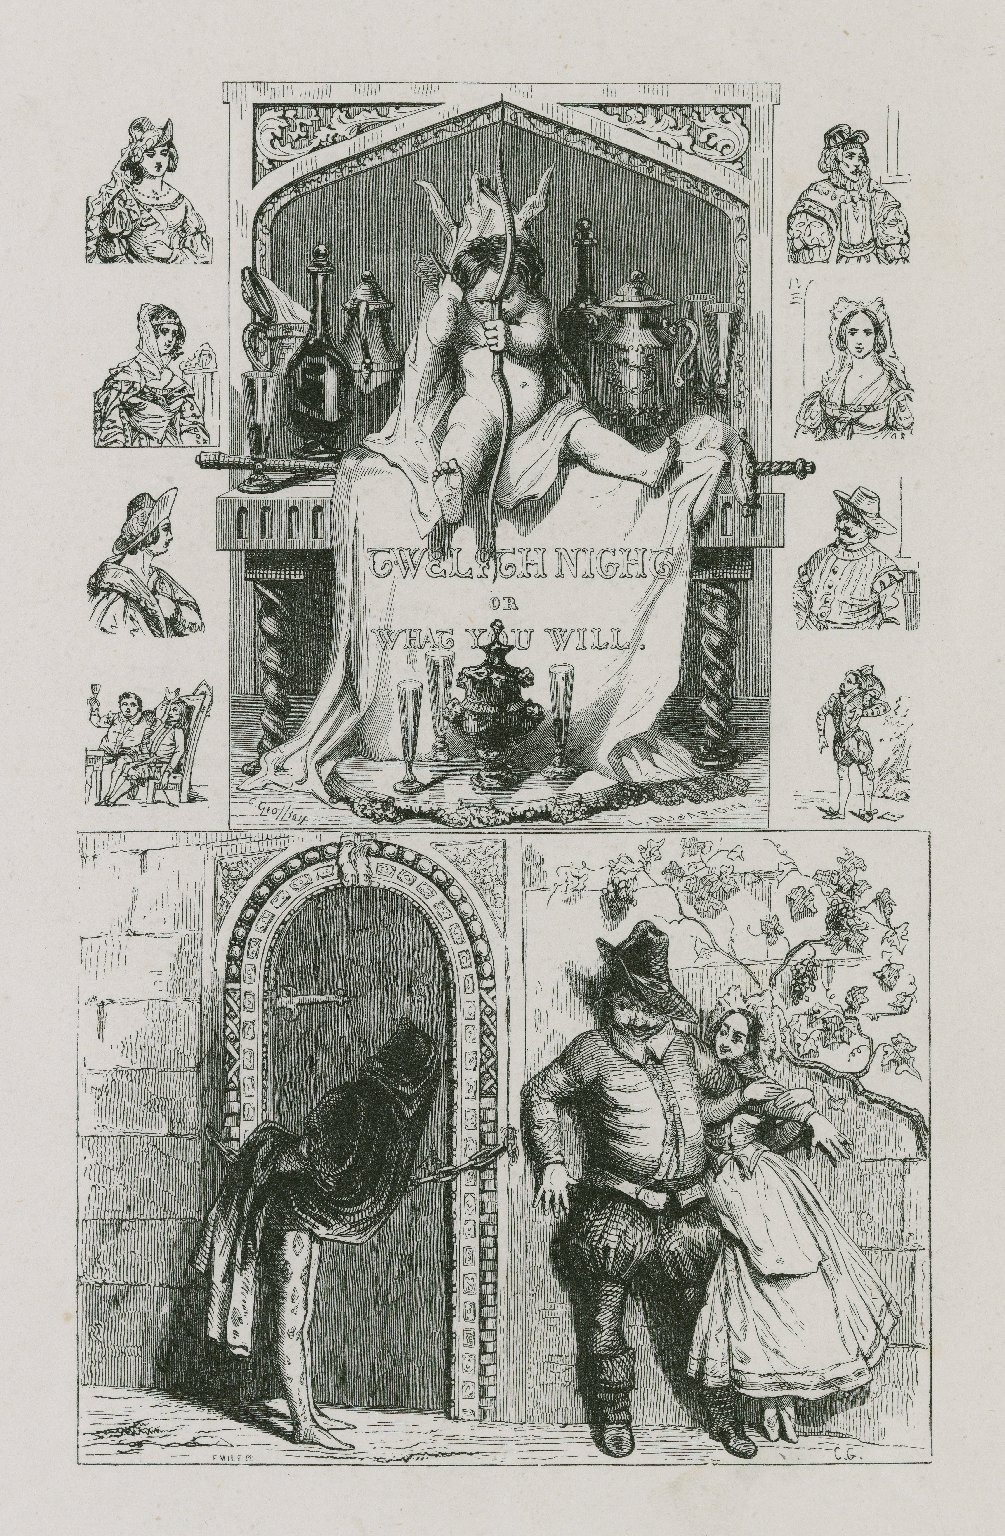 Twelfth night, or what you will [graphic] / C. Geoffroy ; L. DuJardin s. ; Emile [D.C.?] ; C.G.